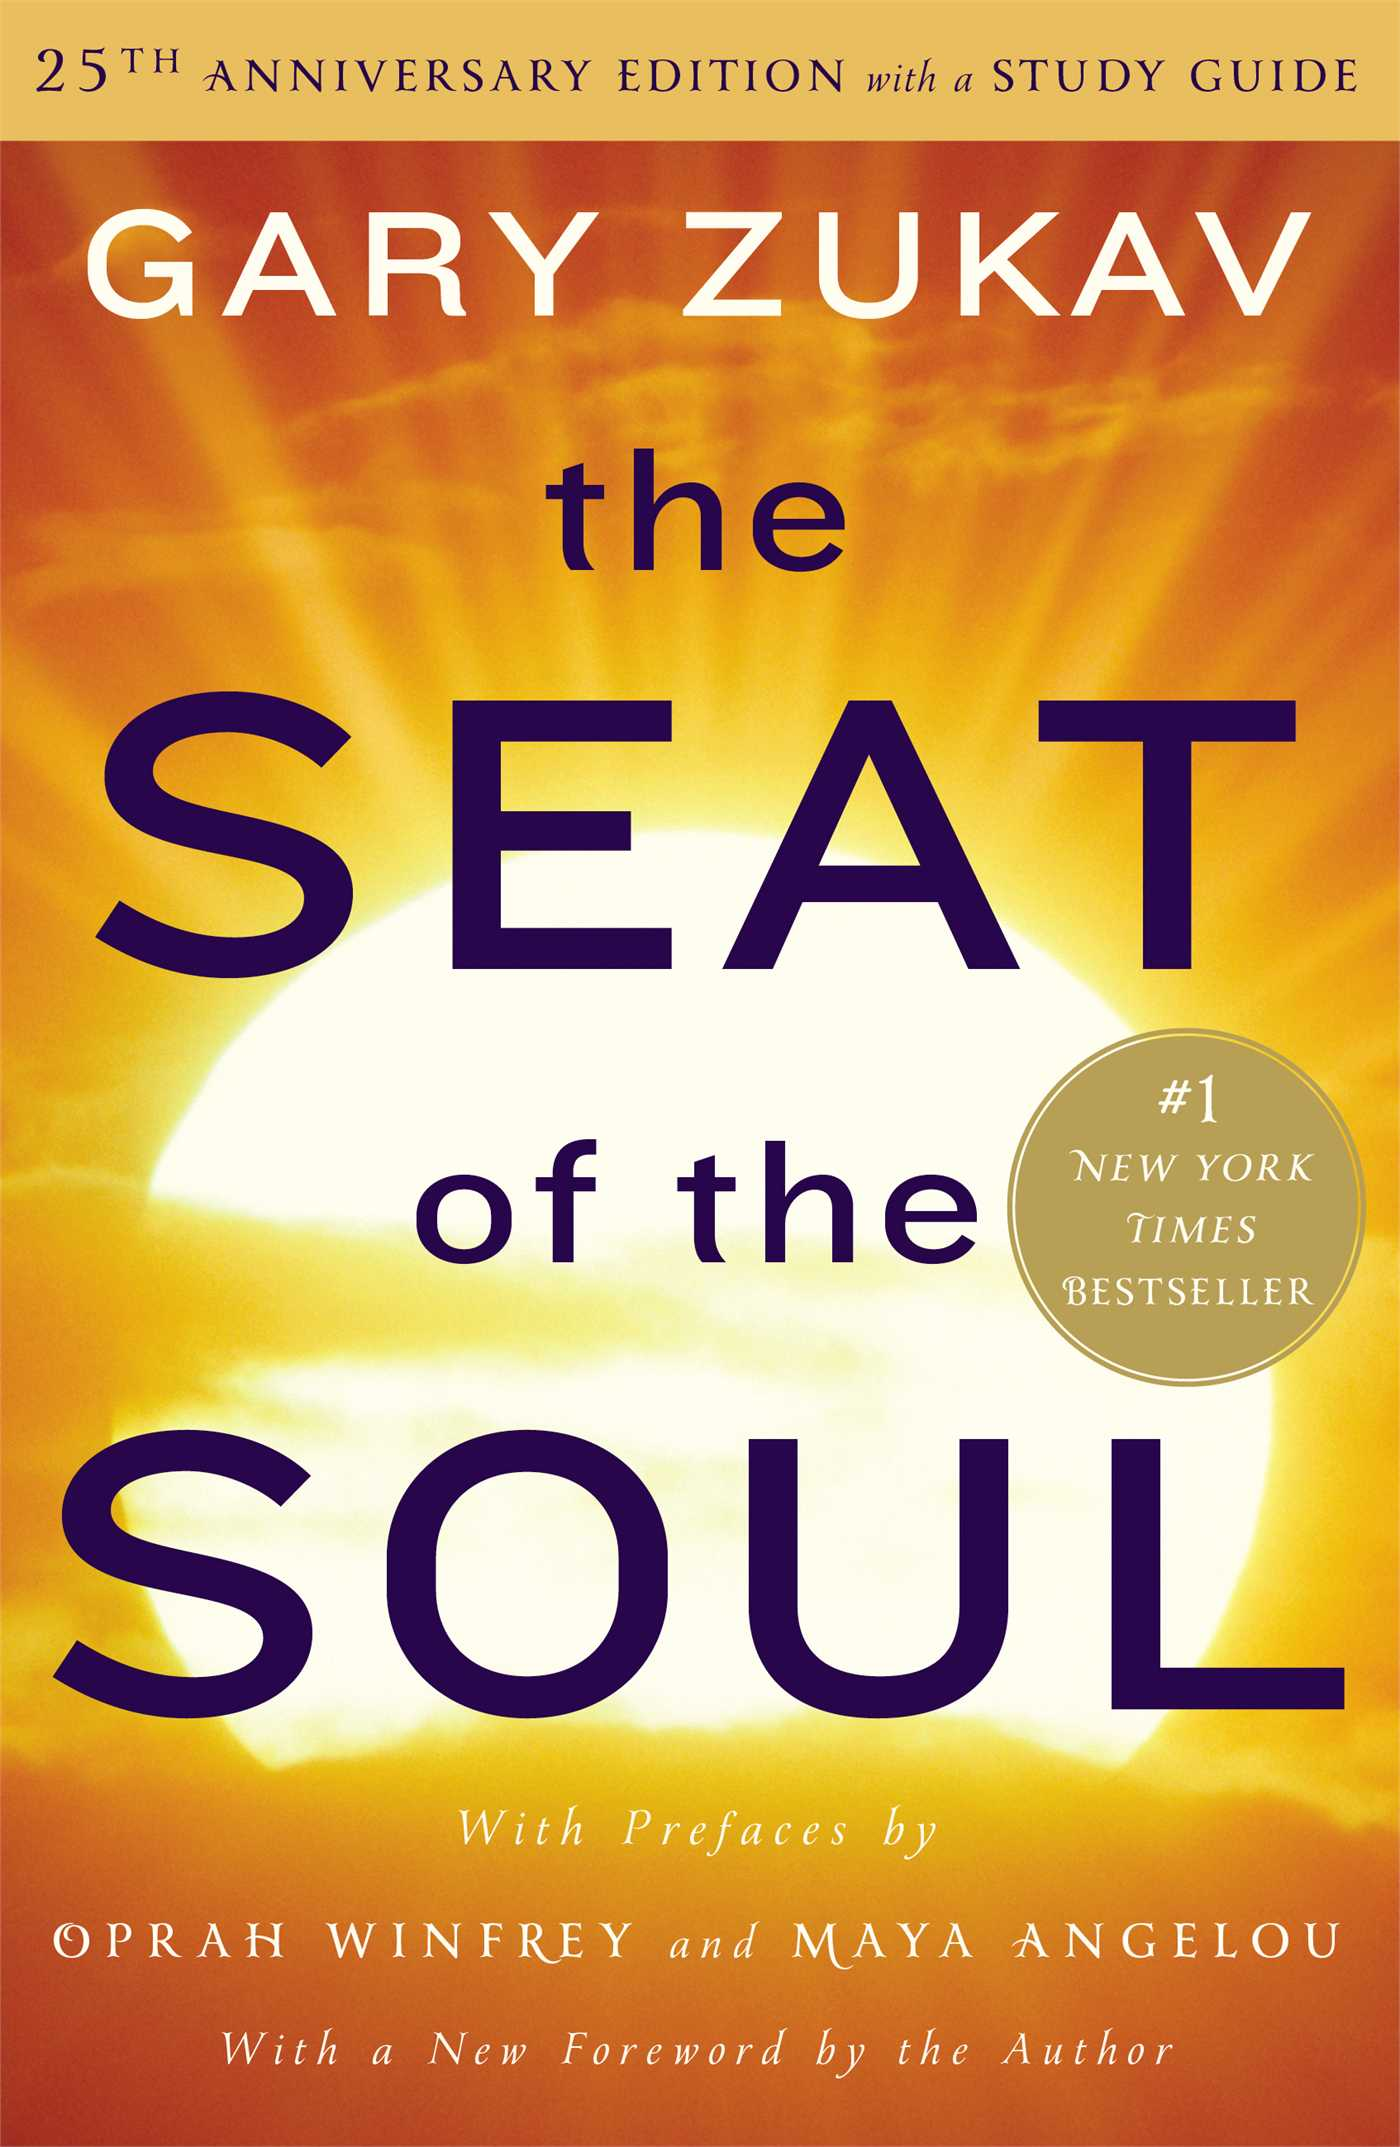 Seat-of-the-soul-9781476740843_hr